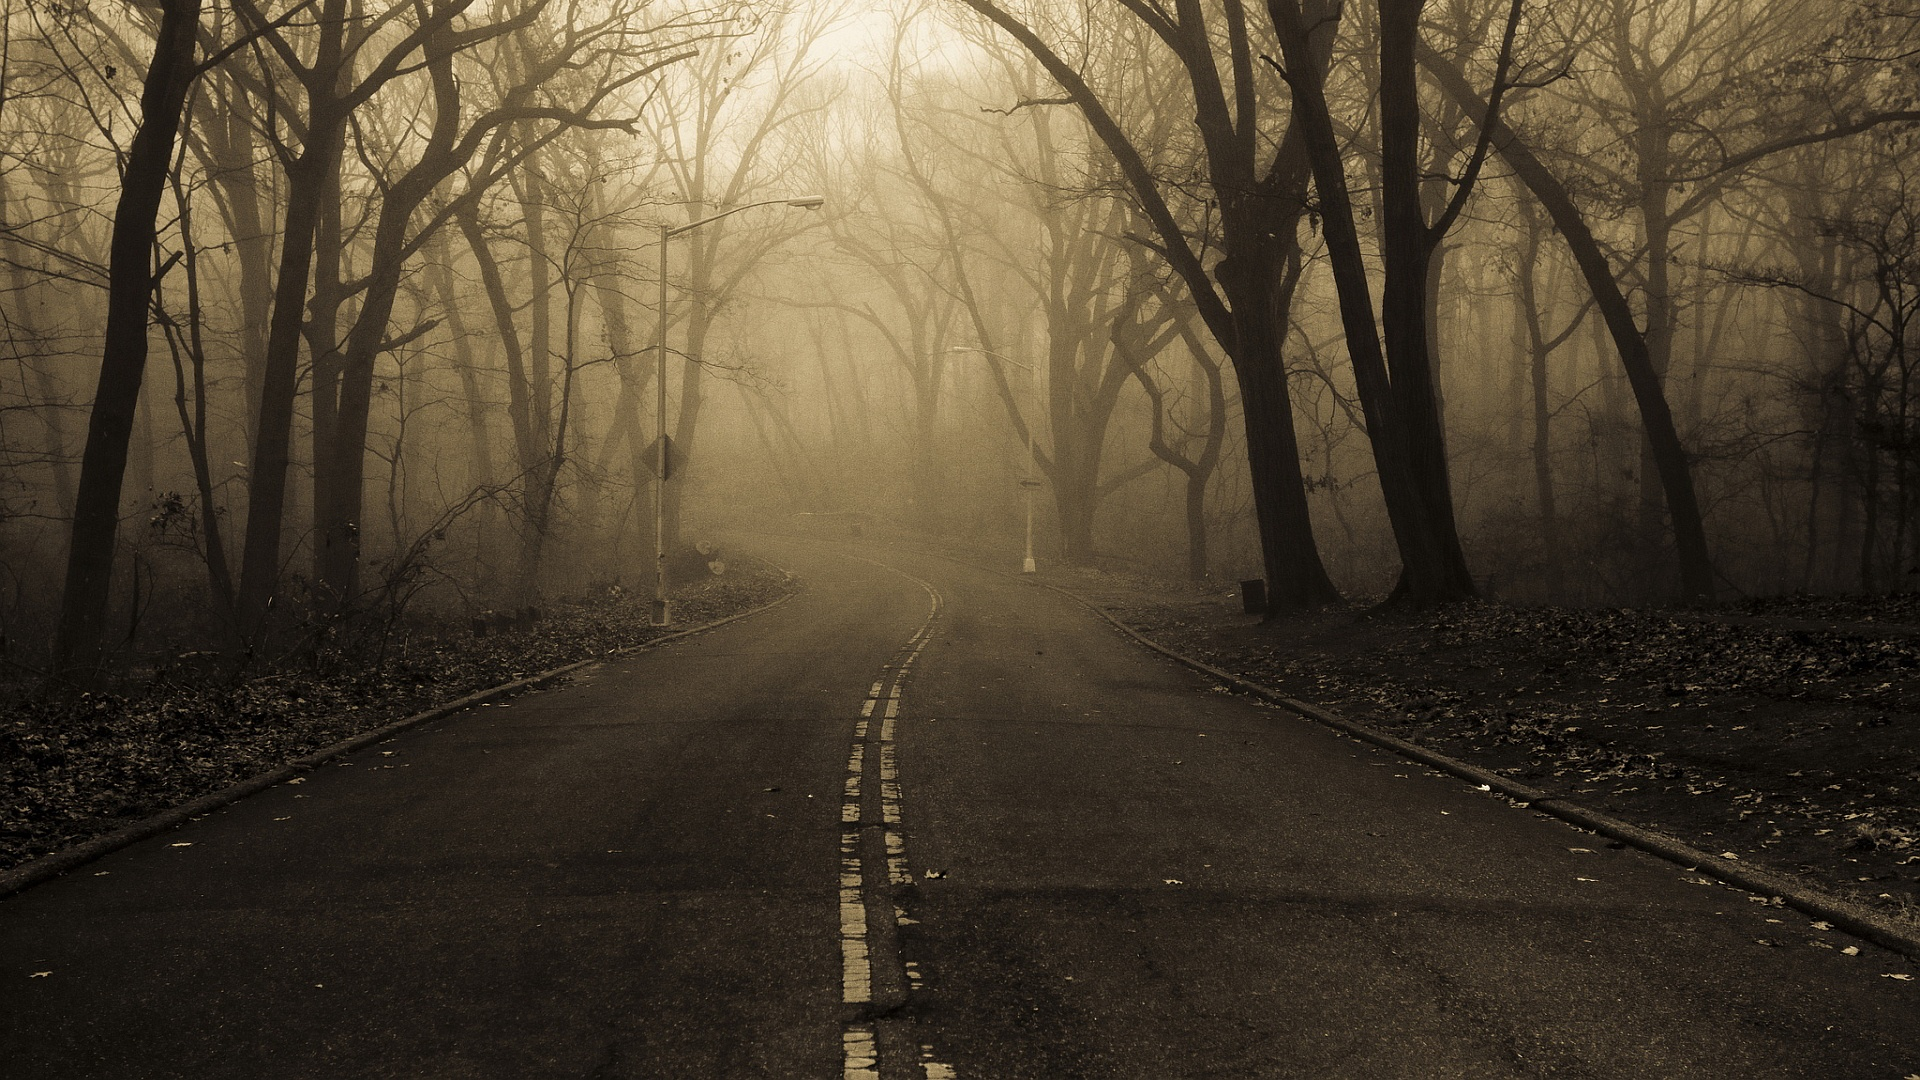 Road forest mist